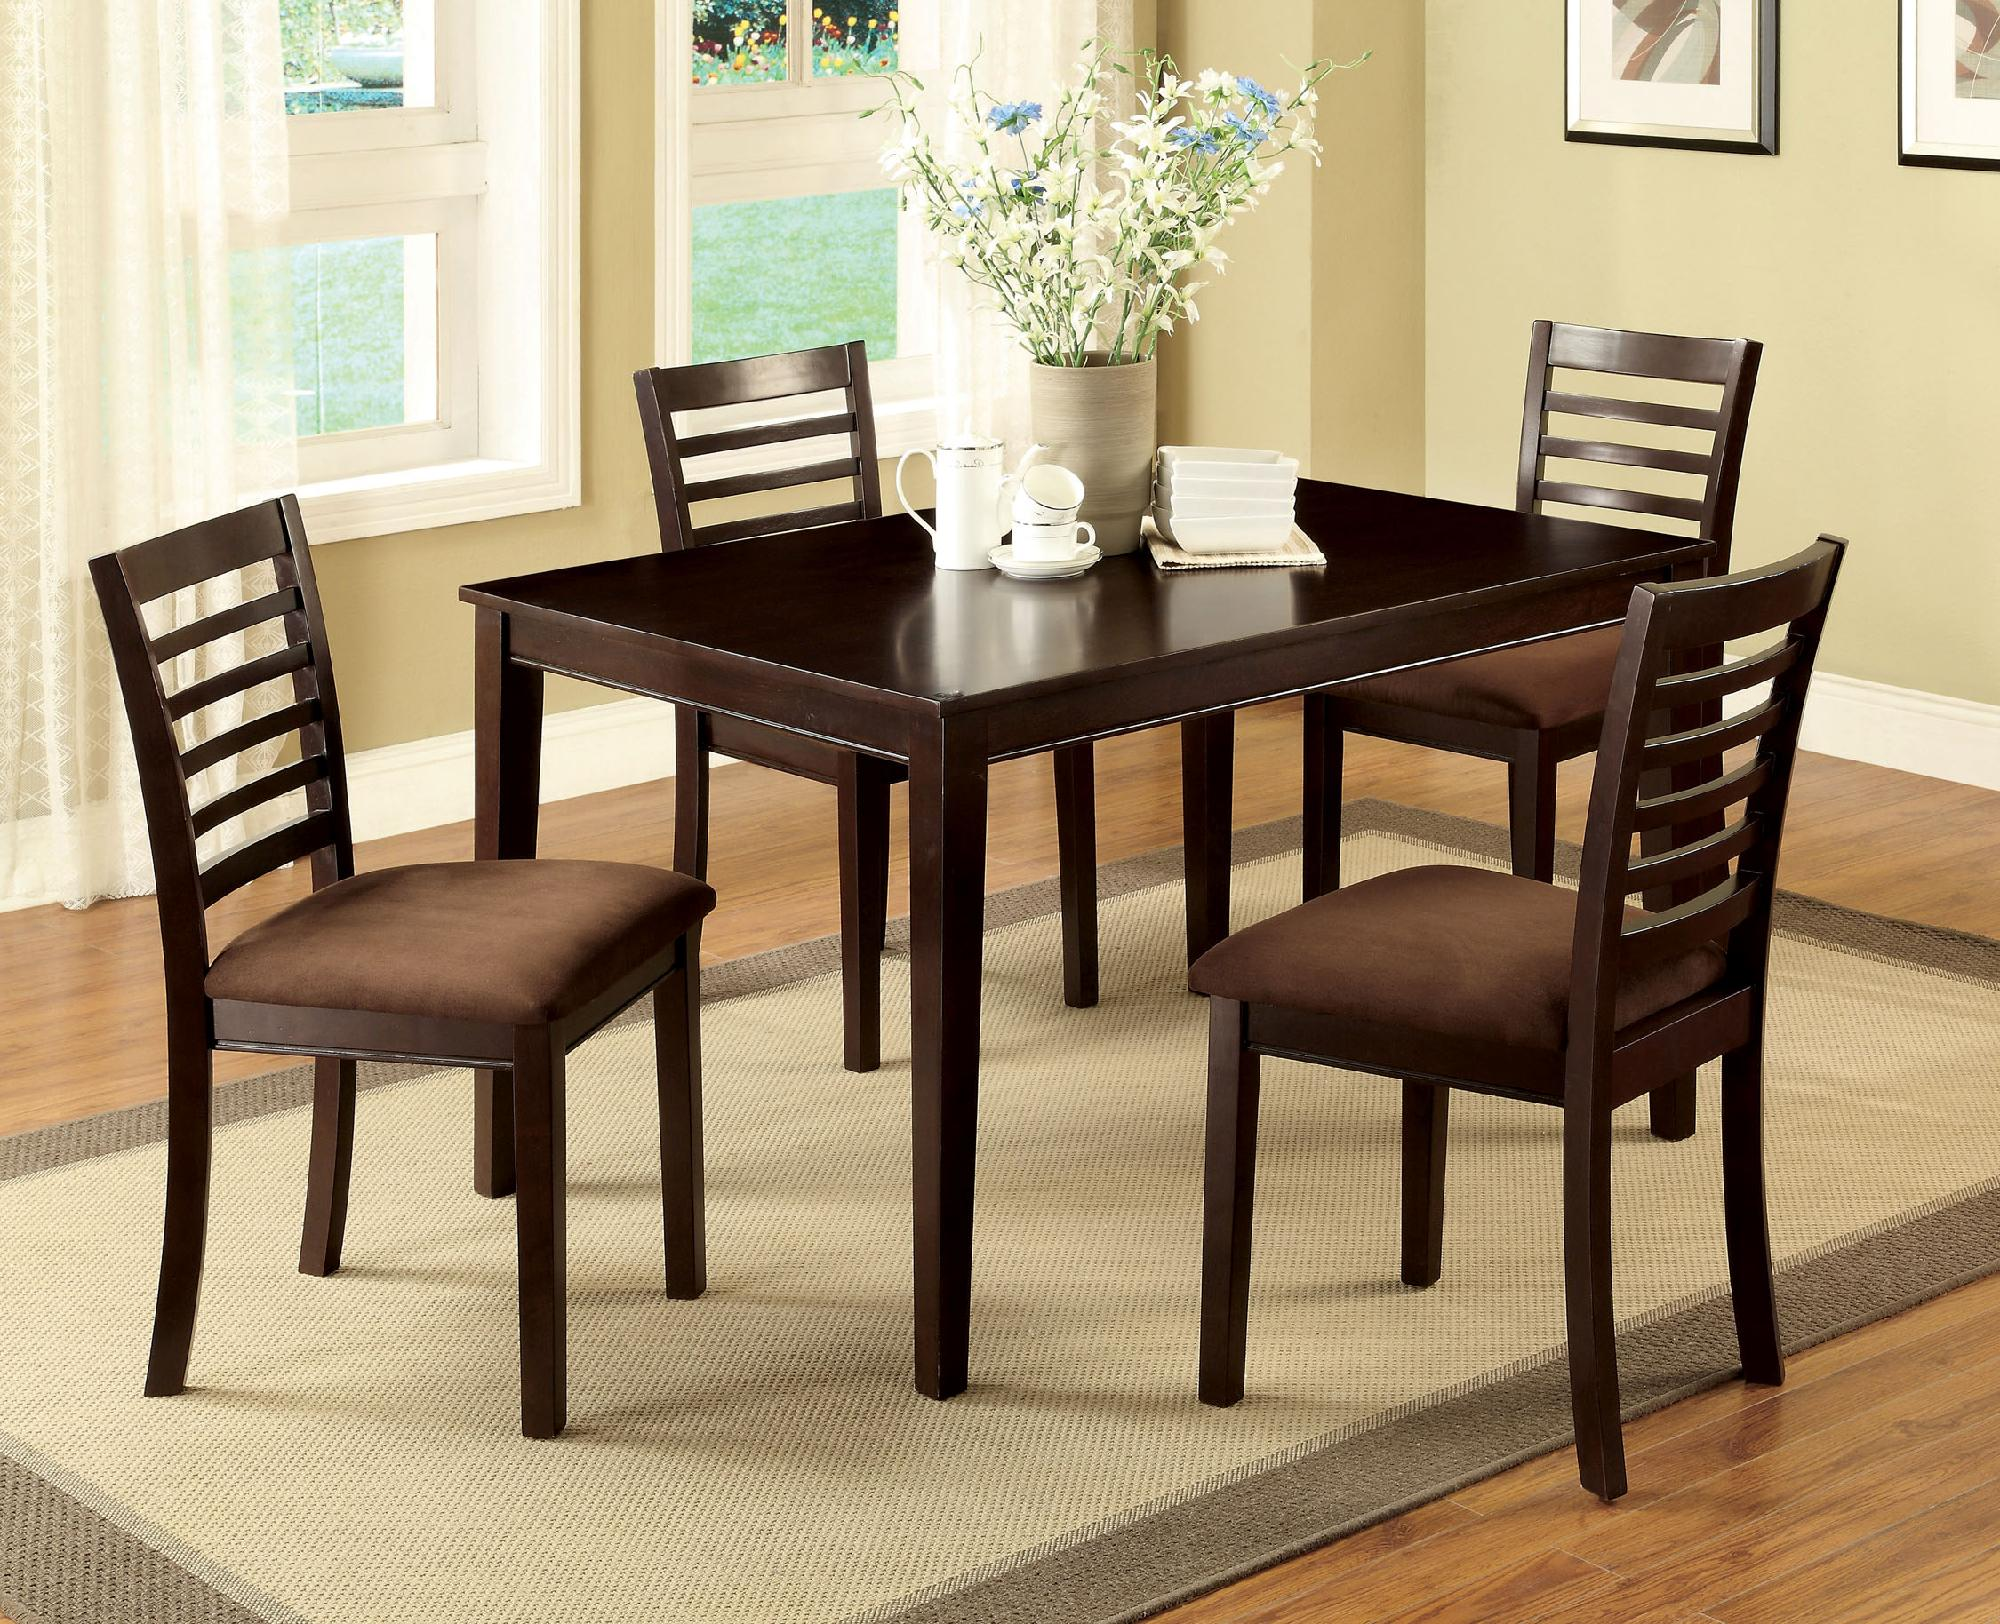 5 piece kitchen table set hell games furniture of america larkans espresso dining